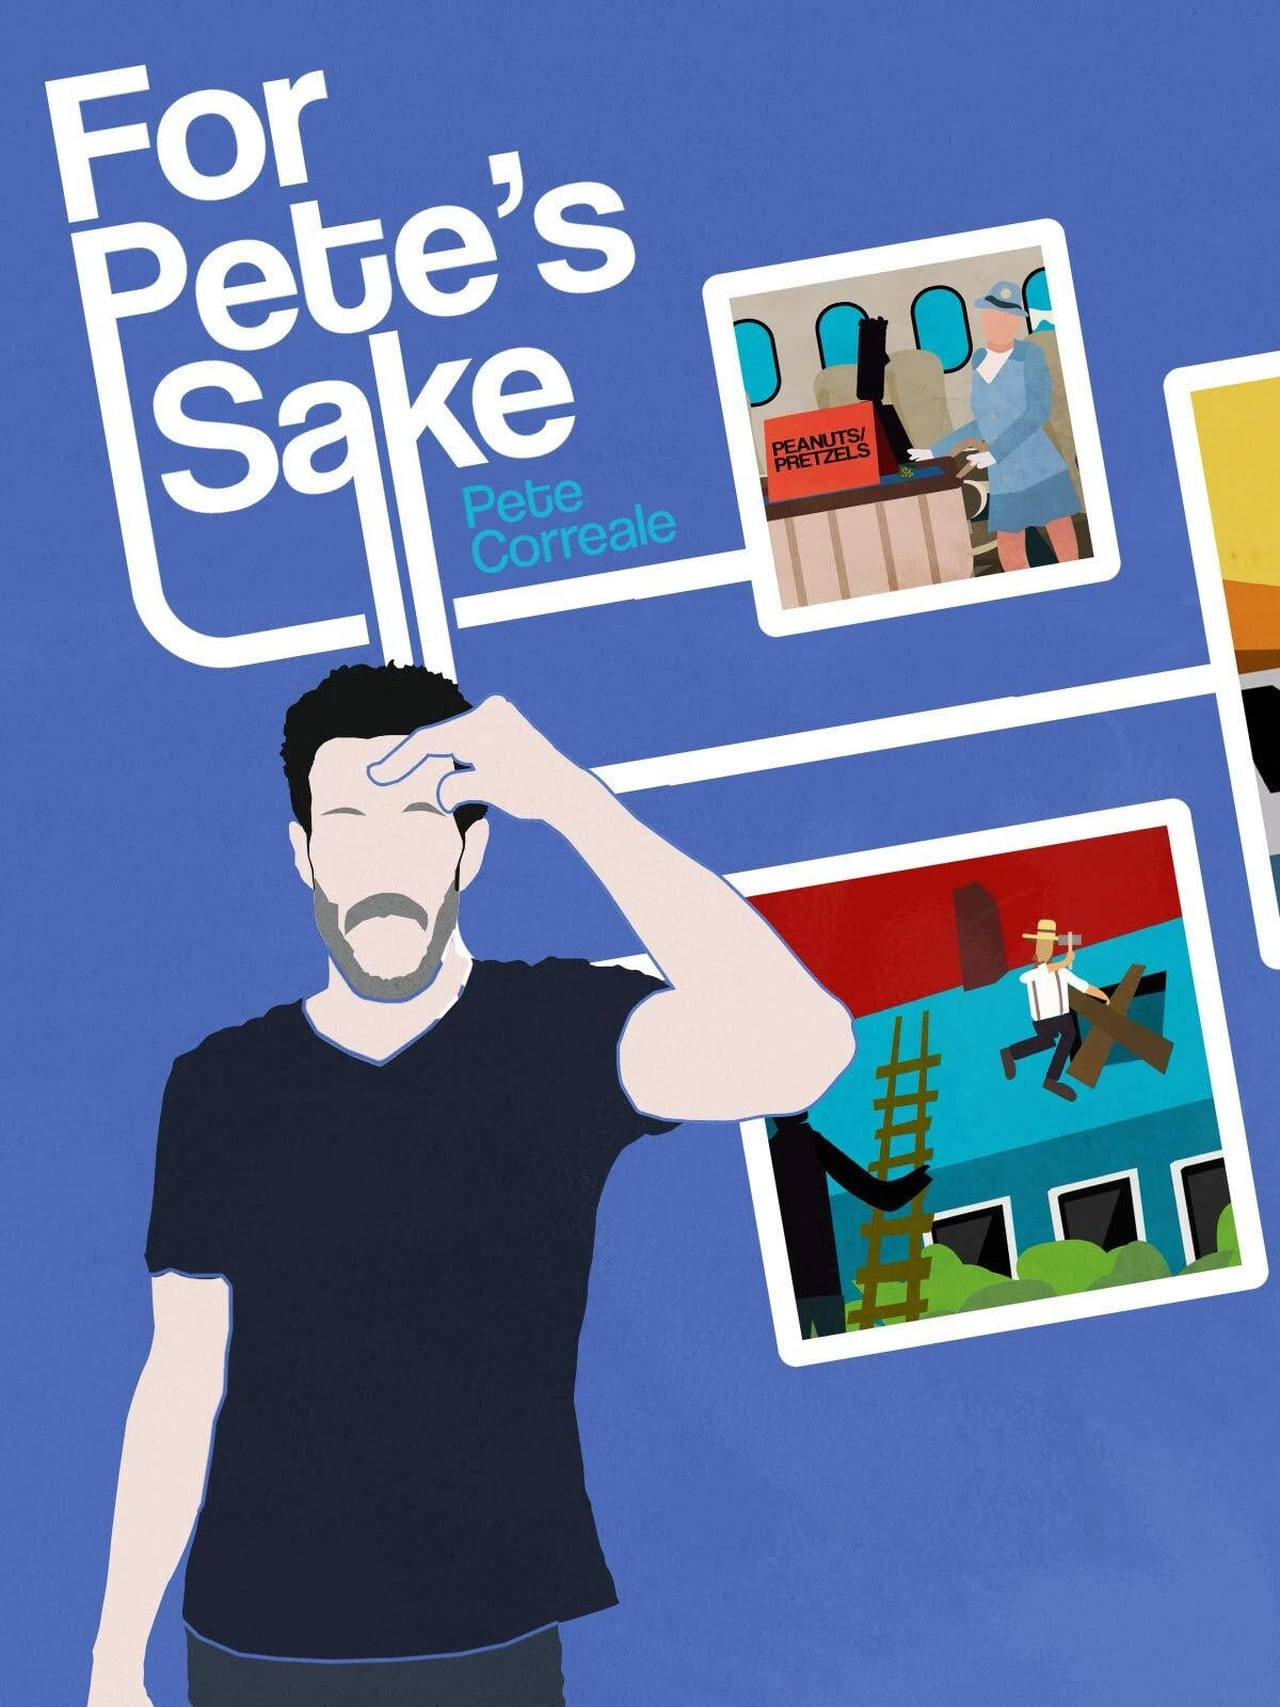 Pete Correale: For Pete's Sake